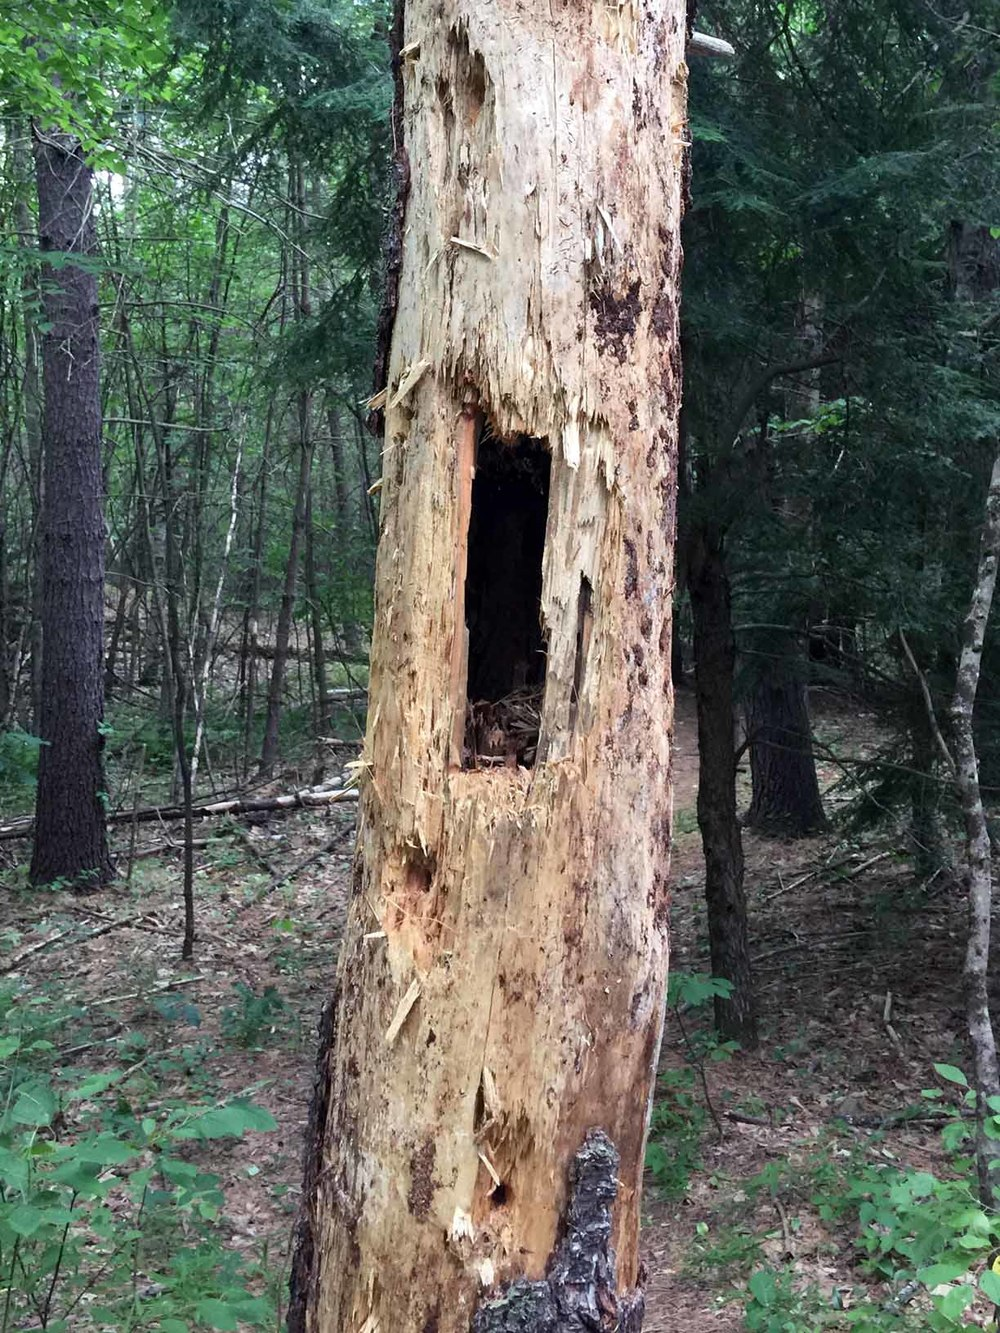 Hole made by a Pileated Woodpecker